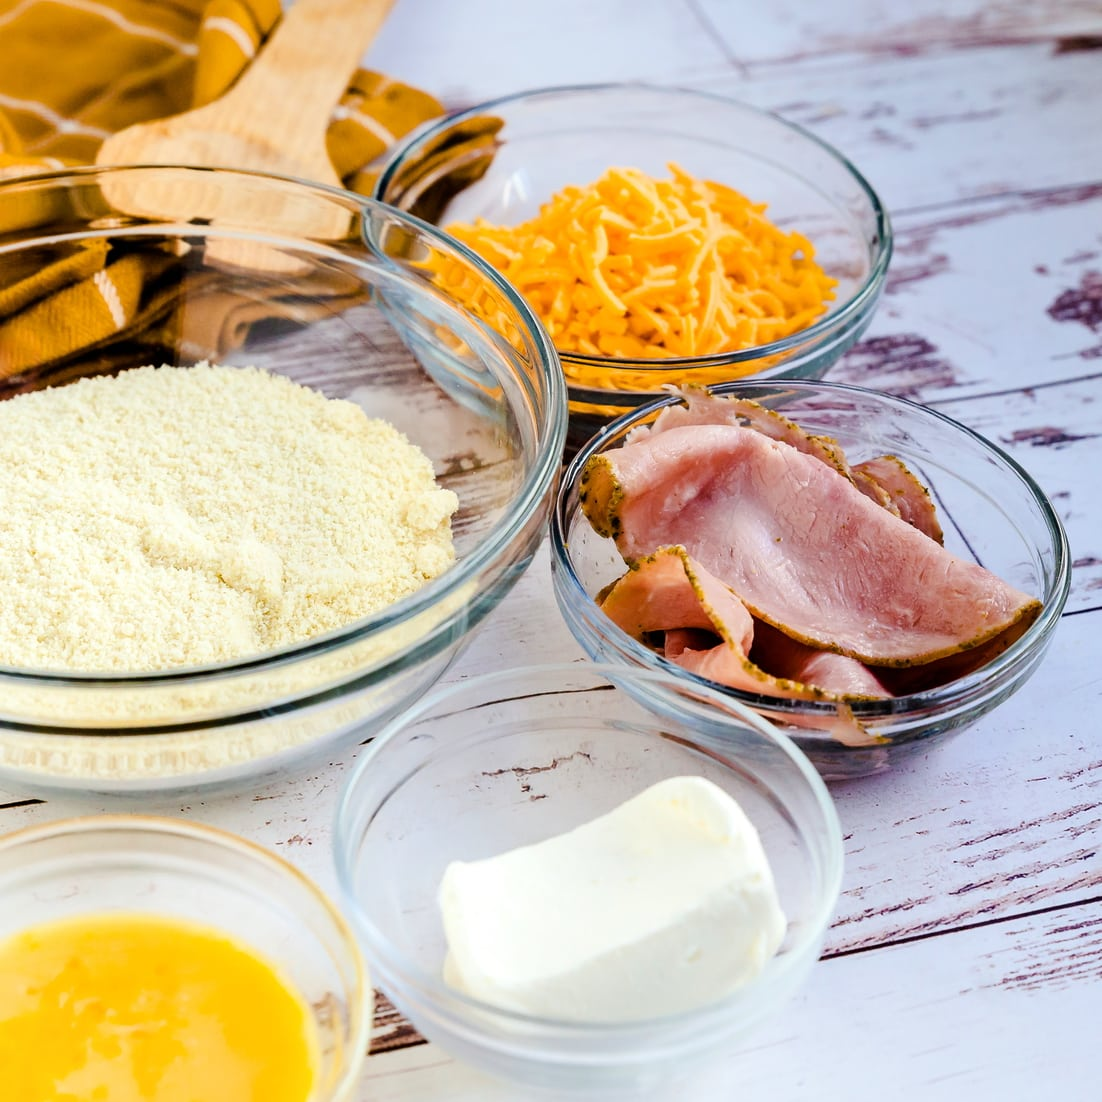 Ingredient for Ham and Cheddar Bread Rolls prepared in glass mixing bowl